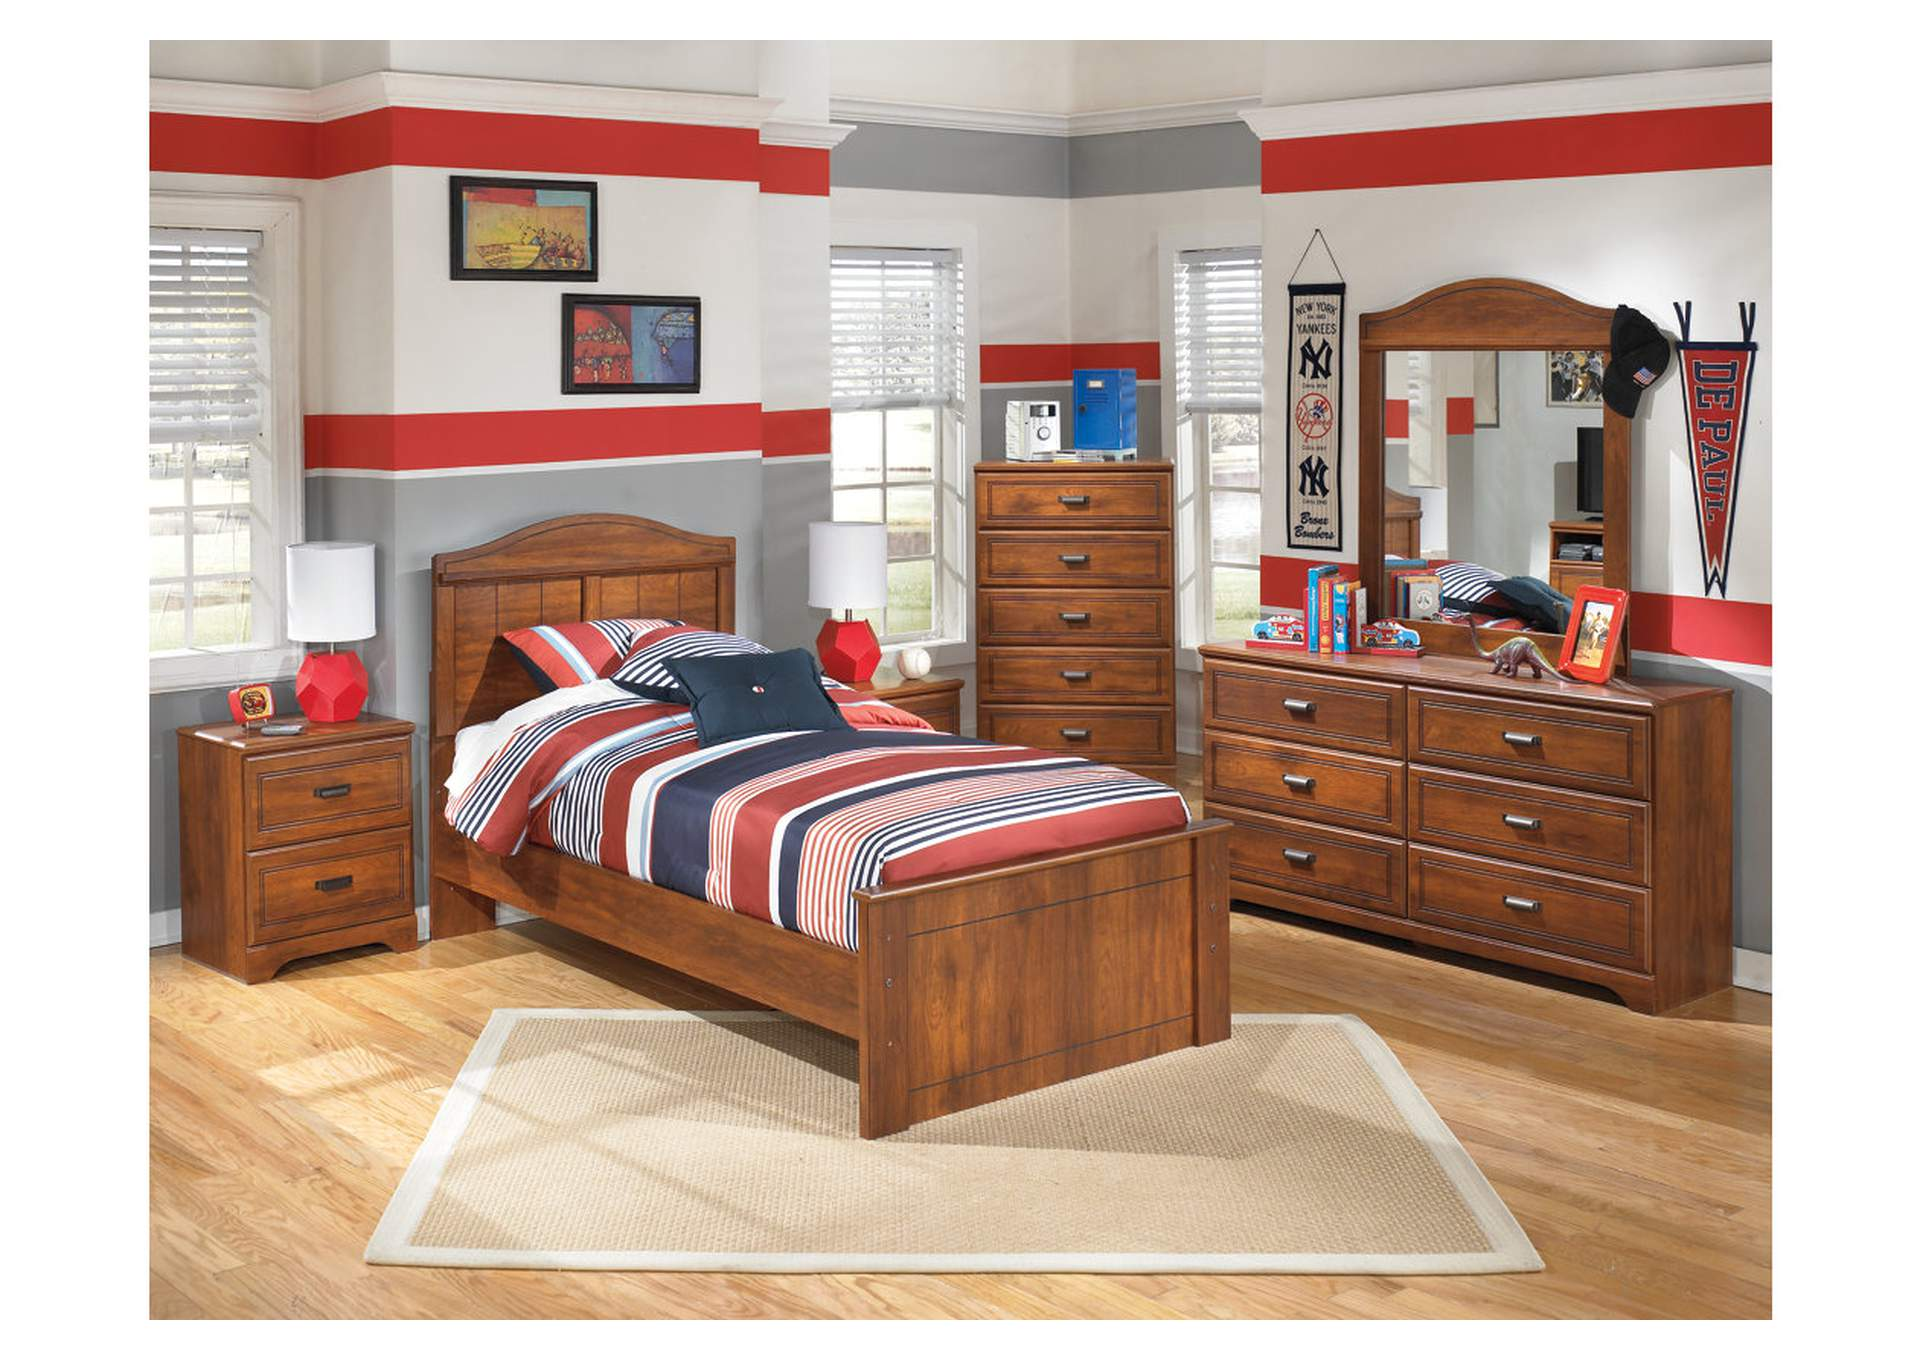 Barchan Twin Panel Bed, Dresser & Mirror,Signature Design By Ashley